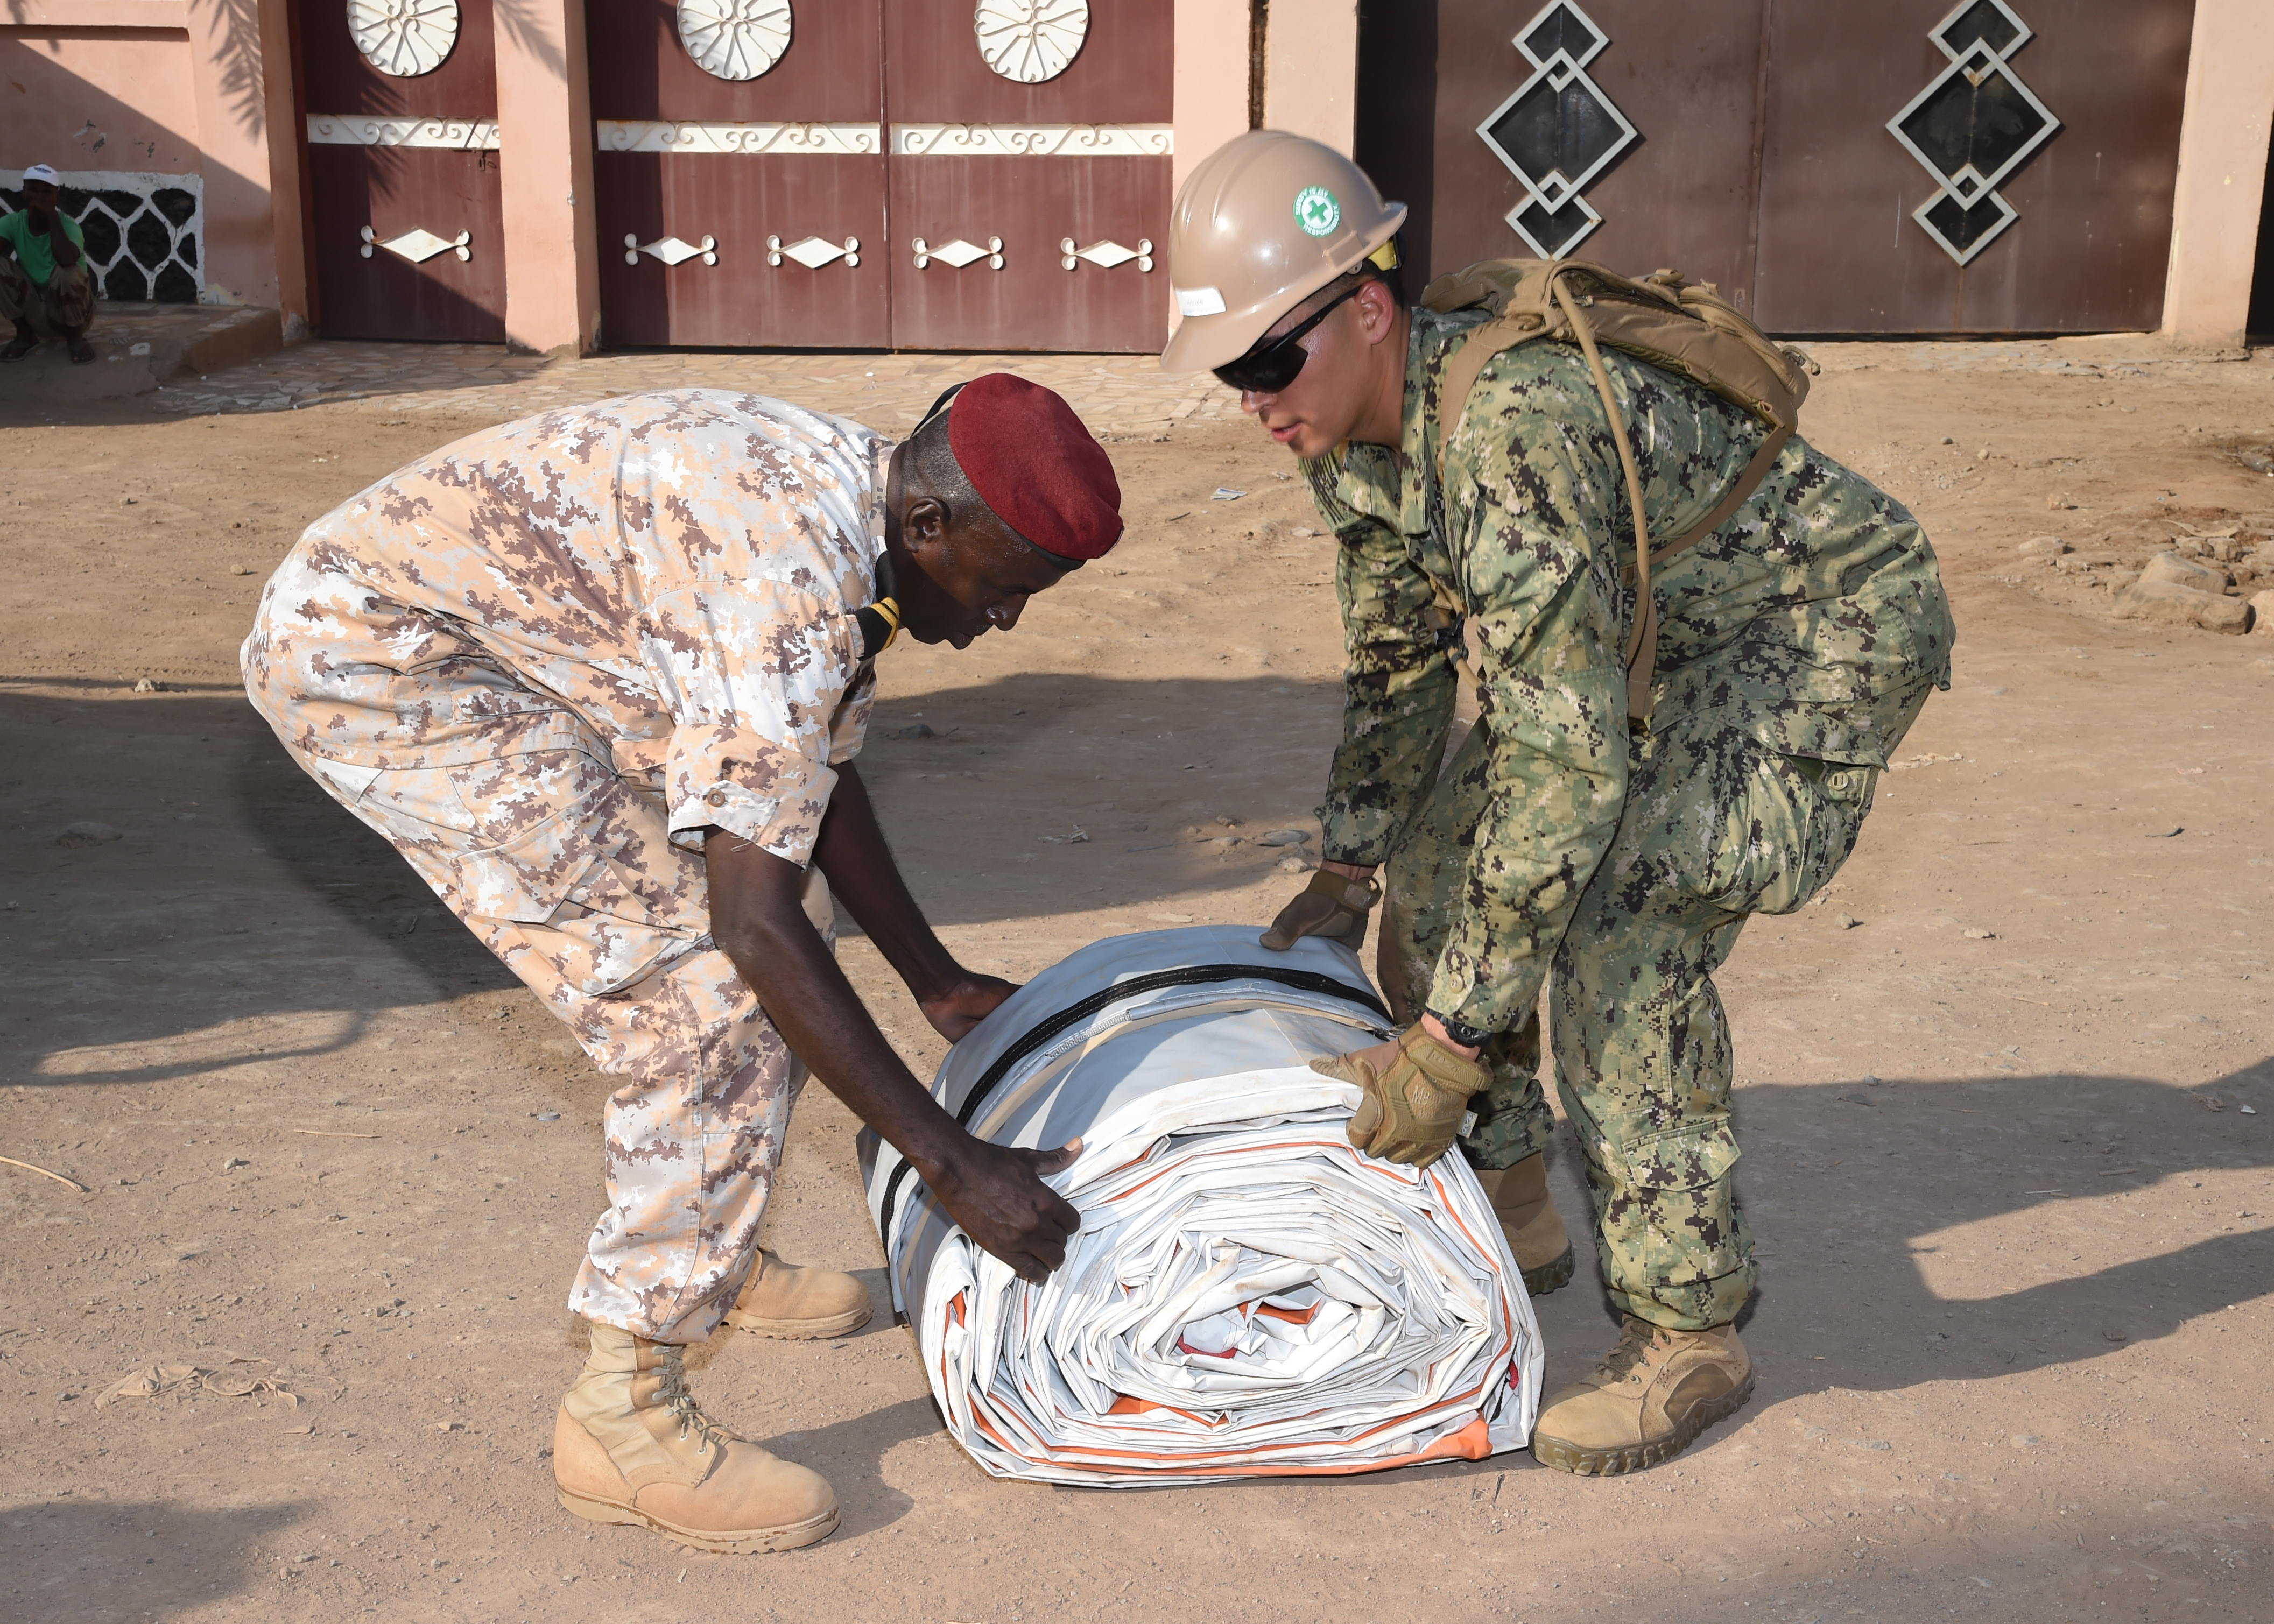 U.S. Navy Hospital Corpsman 3rd Class David Rojas, a Seabee with Naval Mobile Construction Battalion 1, exercises teamwork with a Djibouti Armed Forces soldier during the construction a modular shelter system in Djibouti City, Feb. 27, 2017. The shelter is one of six donated by U.S. manufacturer Alaska Shelters through the Global Action Coalition, for to use as schools, clinics, and centers for cottage industry to promote the health, education and economic stability of the Djiboutian people. (U.S. Air National Guard photo by Master Sgt. Paul Gorman)